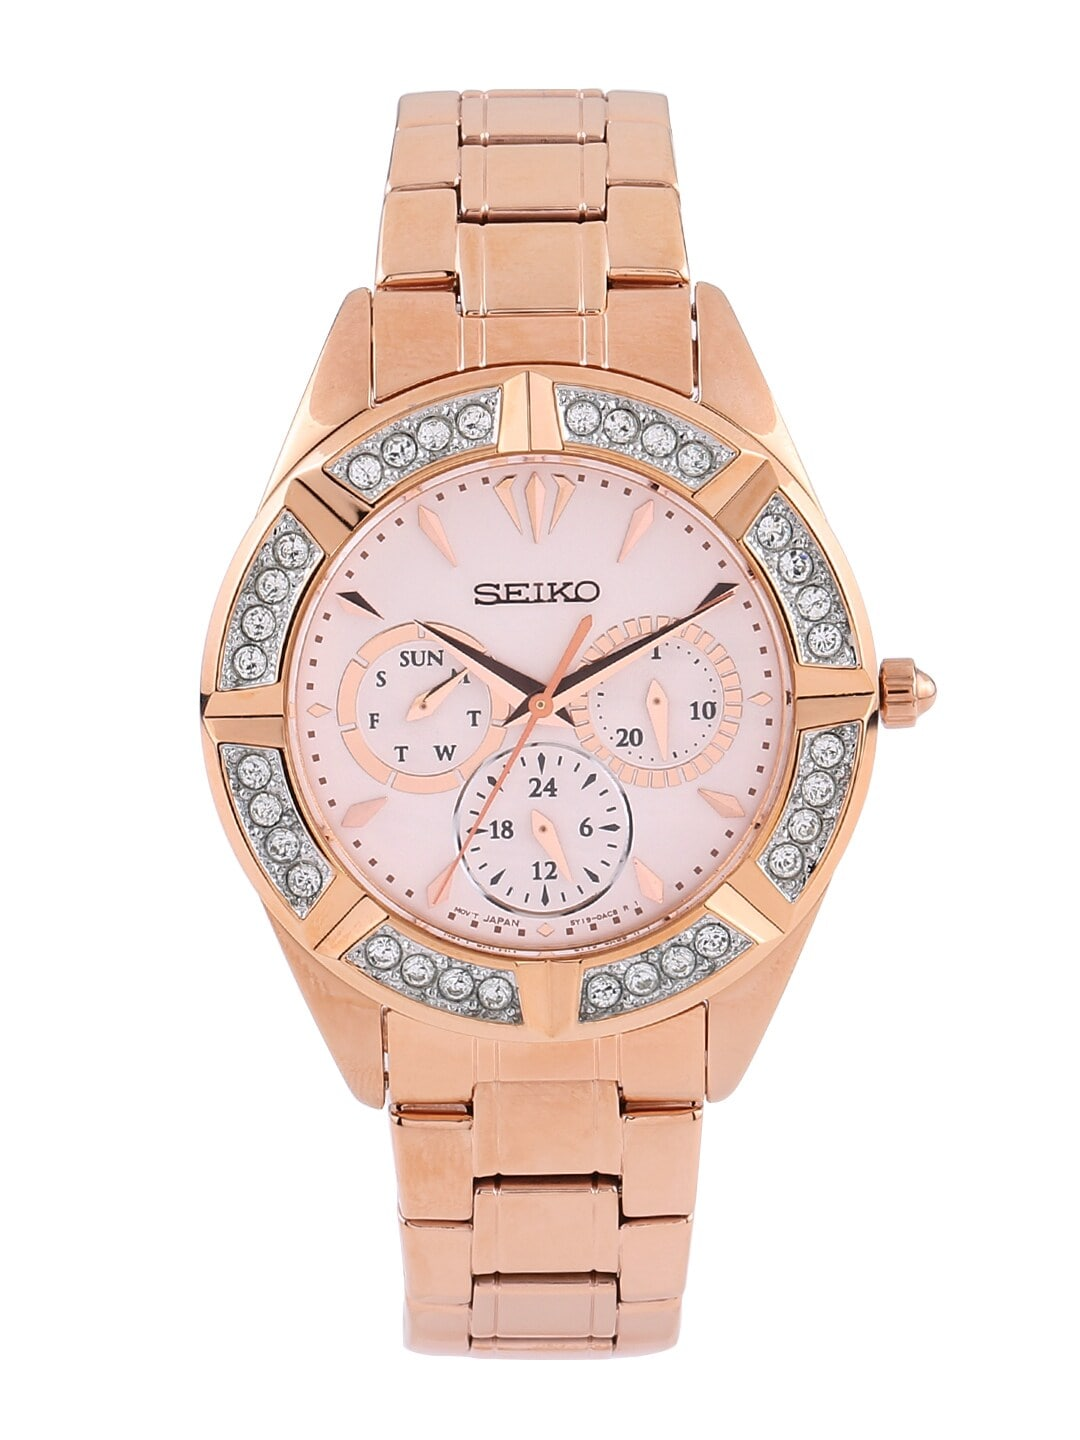 SEIKO Women Rose Gold-Toned Swarovski Dial Watch SKY680P1